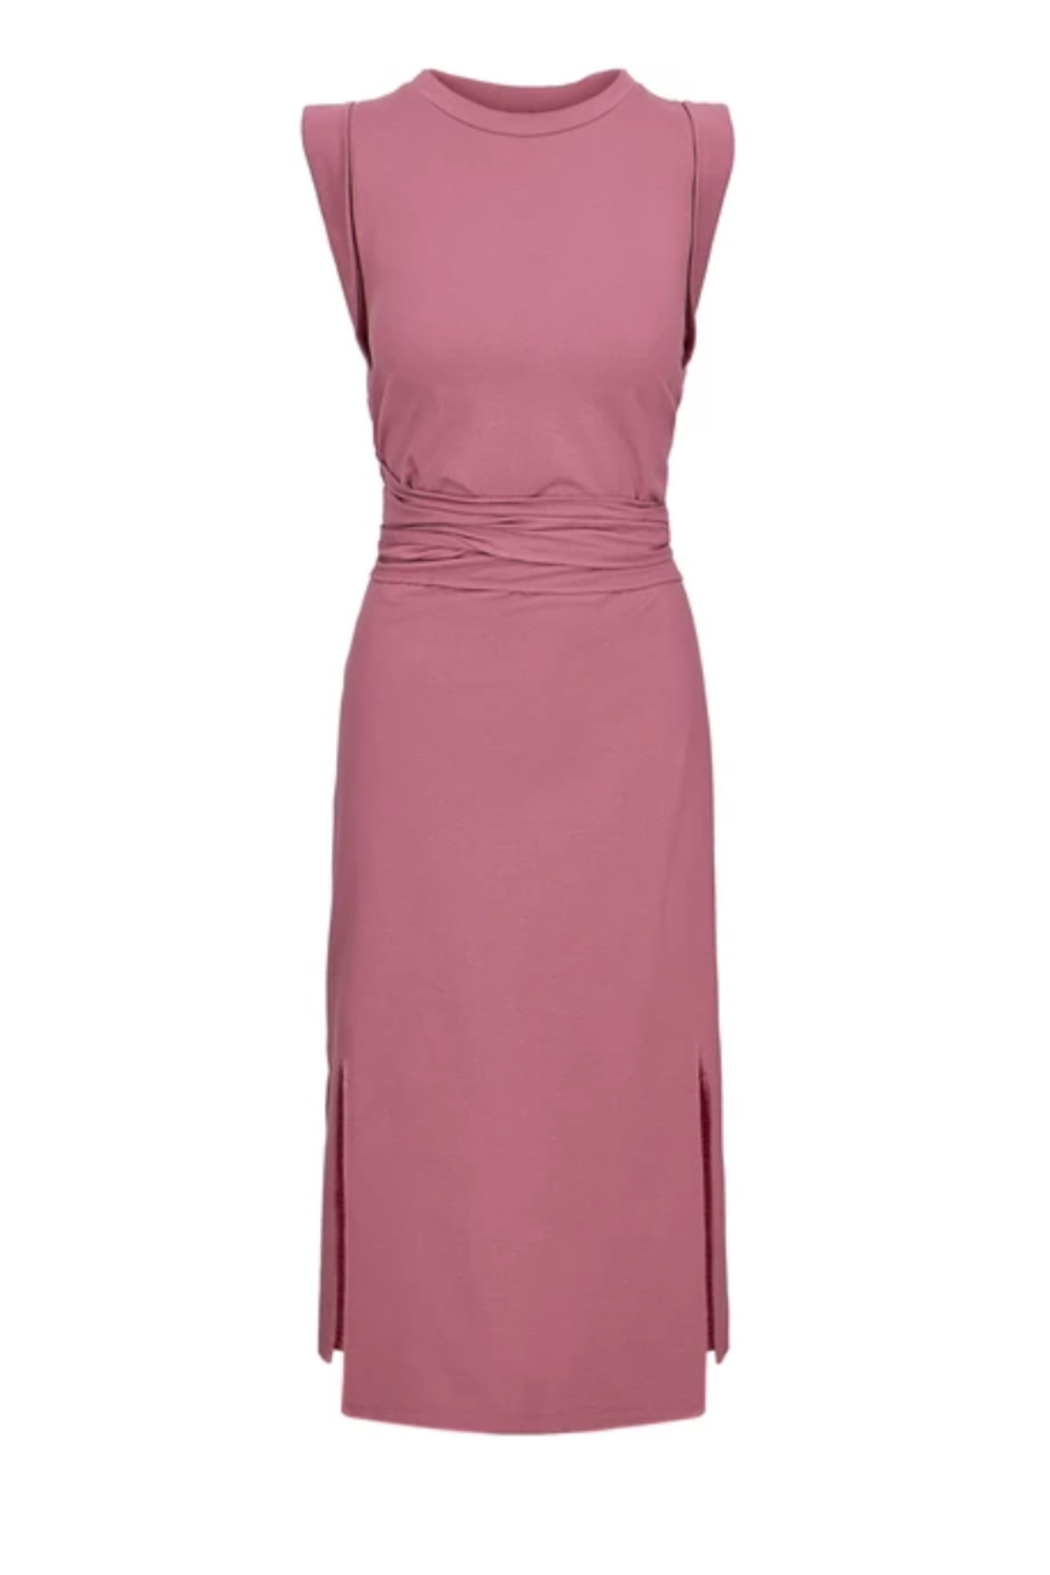 Bishop + Young French Terry Wrap Dress - Main Image